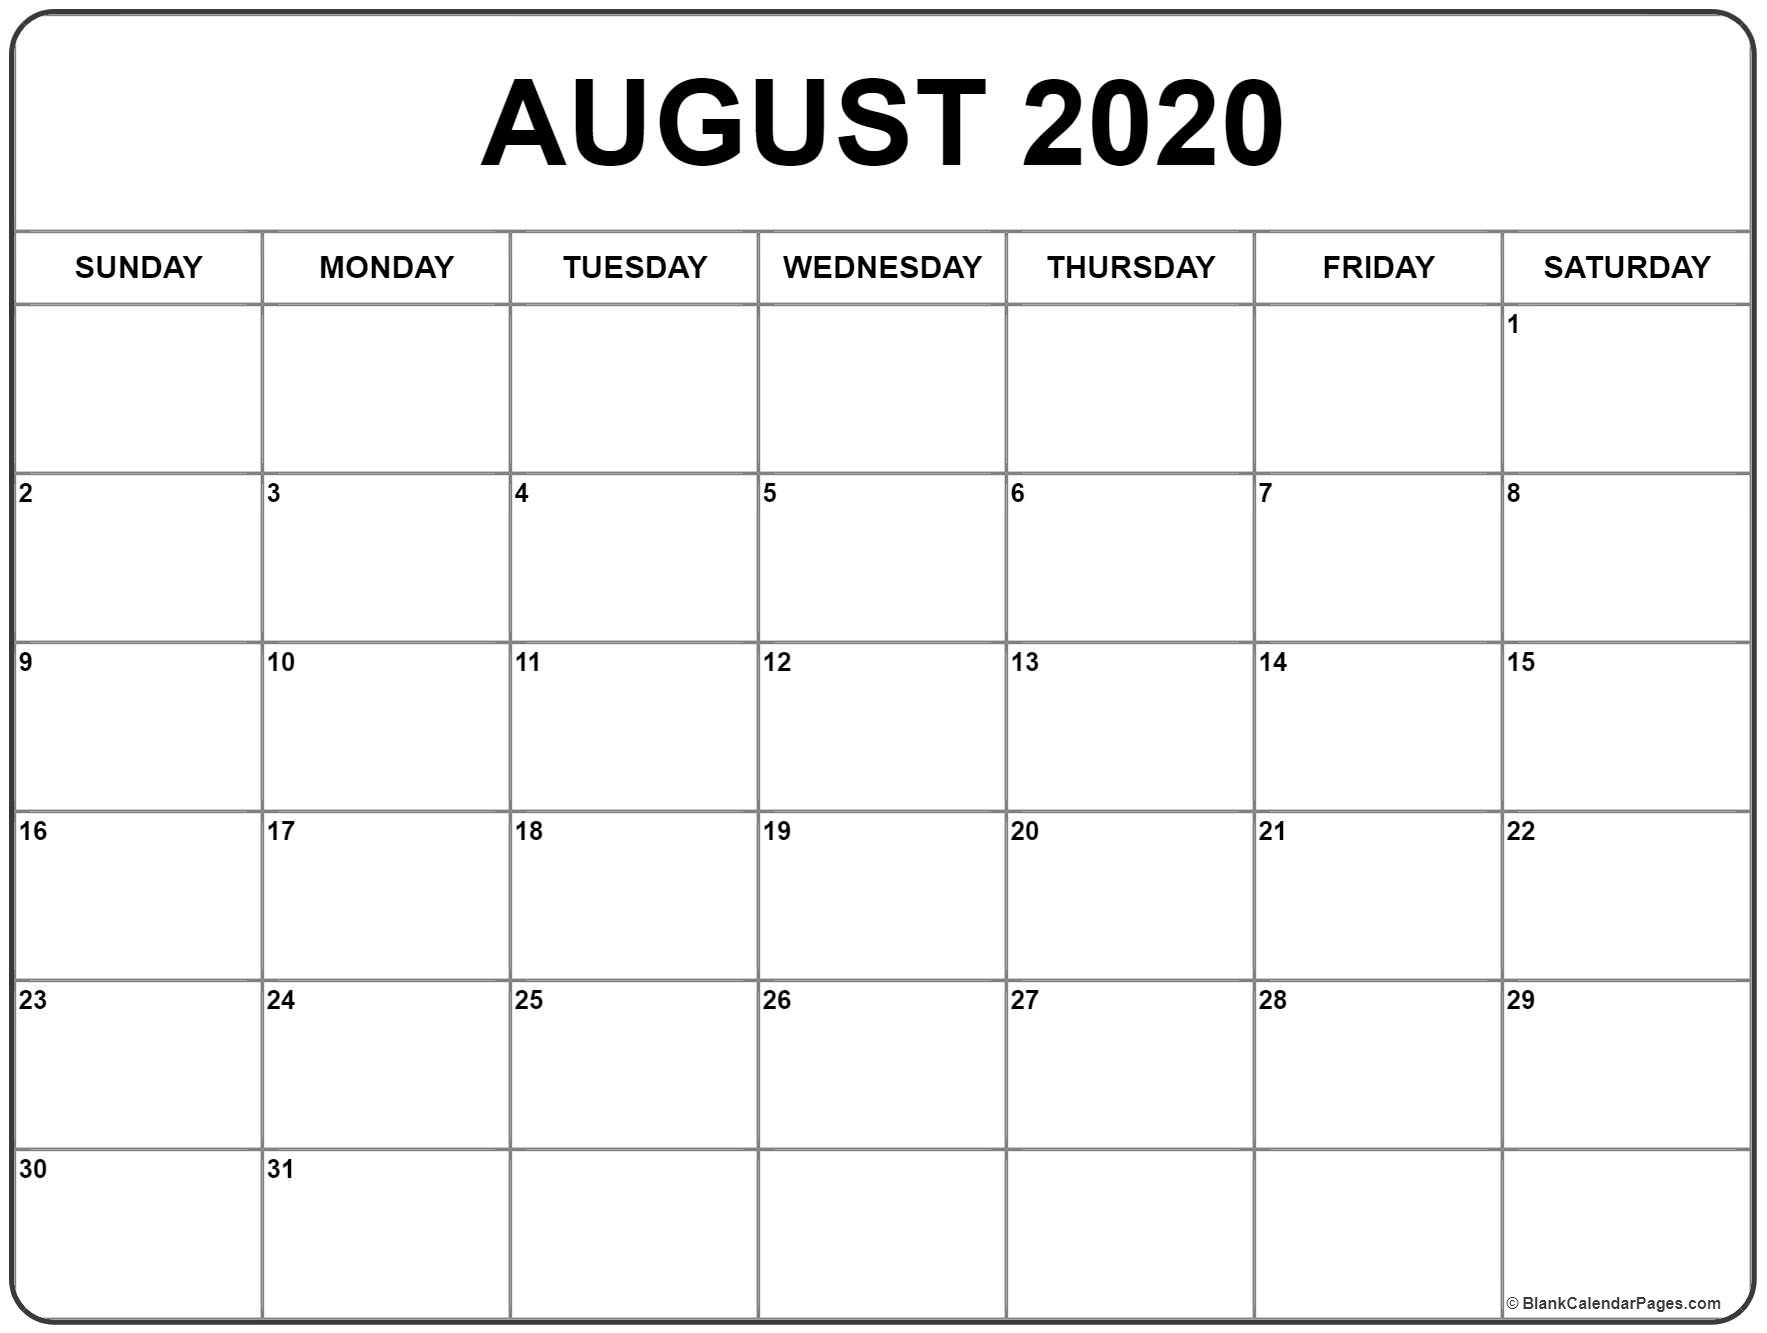 August 2020 Calendar | Free Printable Monthly Calendars-Monday Thru Friday Calendar Template 2020